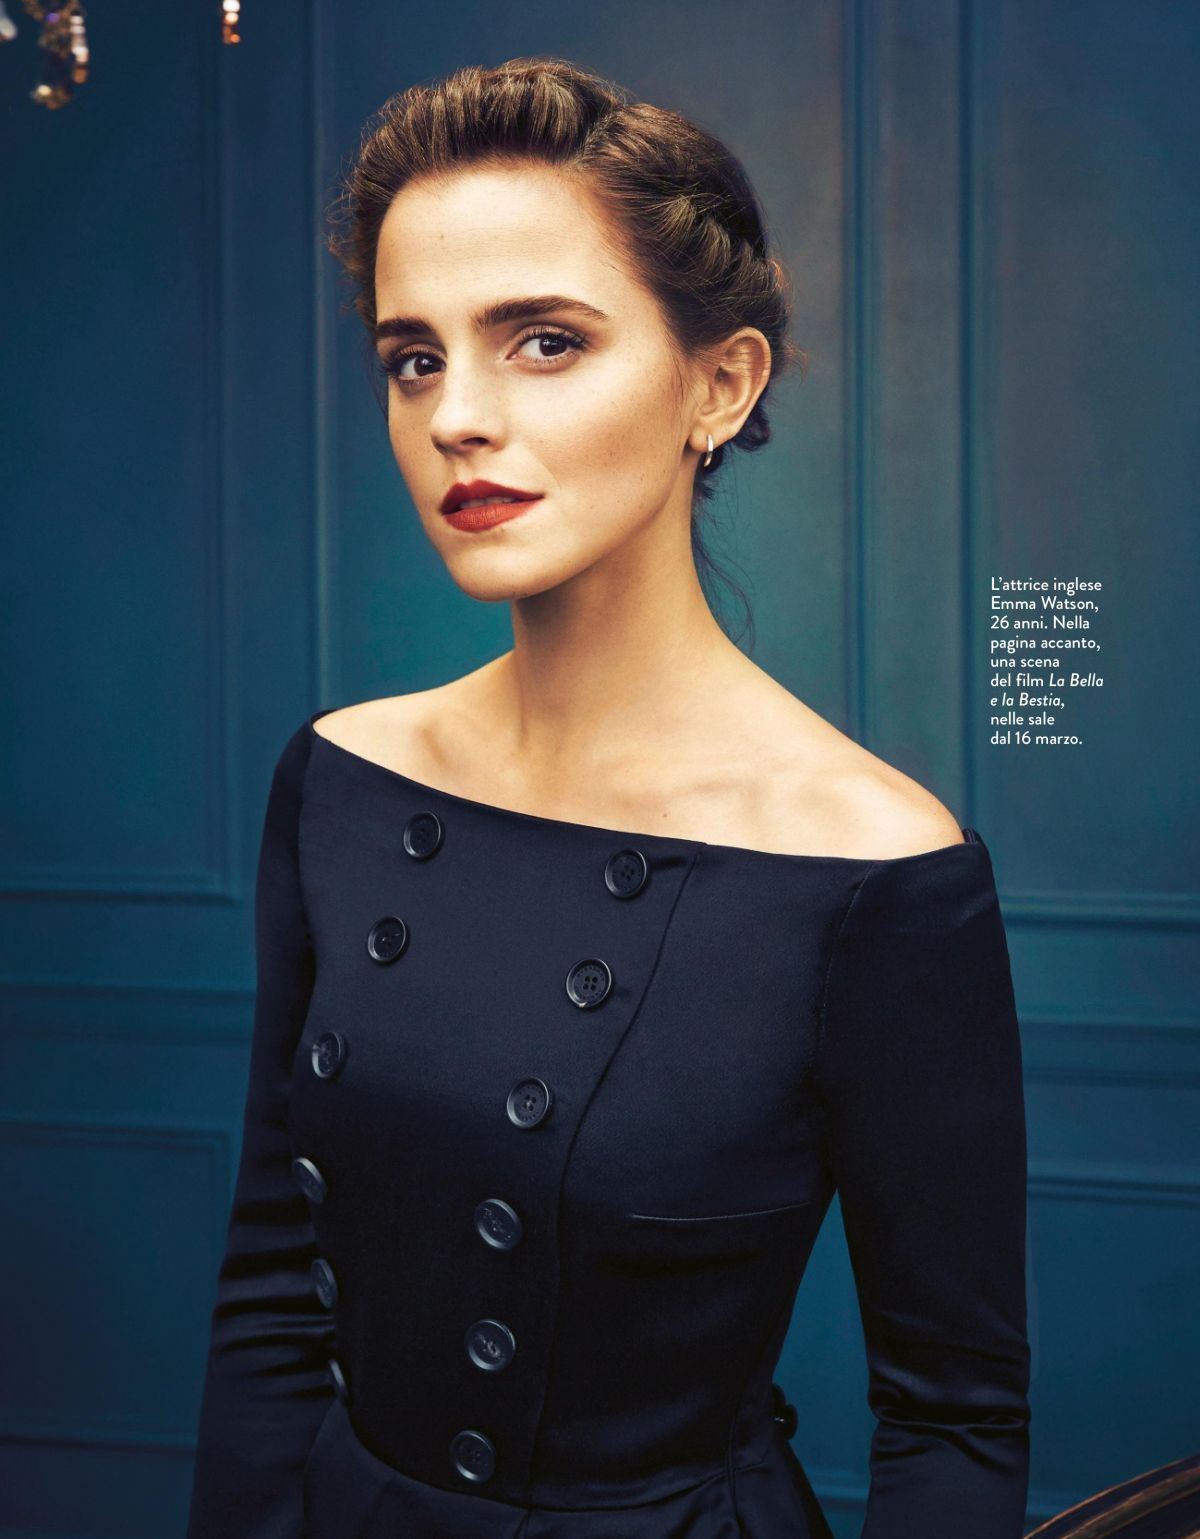 EMMA WATSON in Grazia Magazine, Italy March 2017